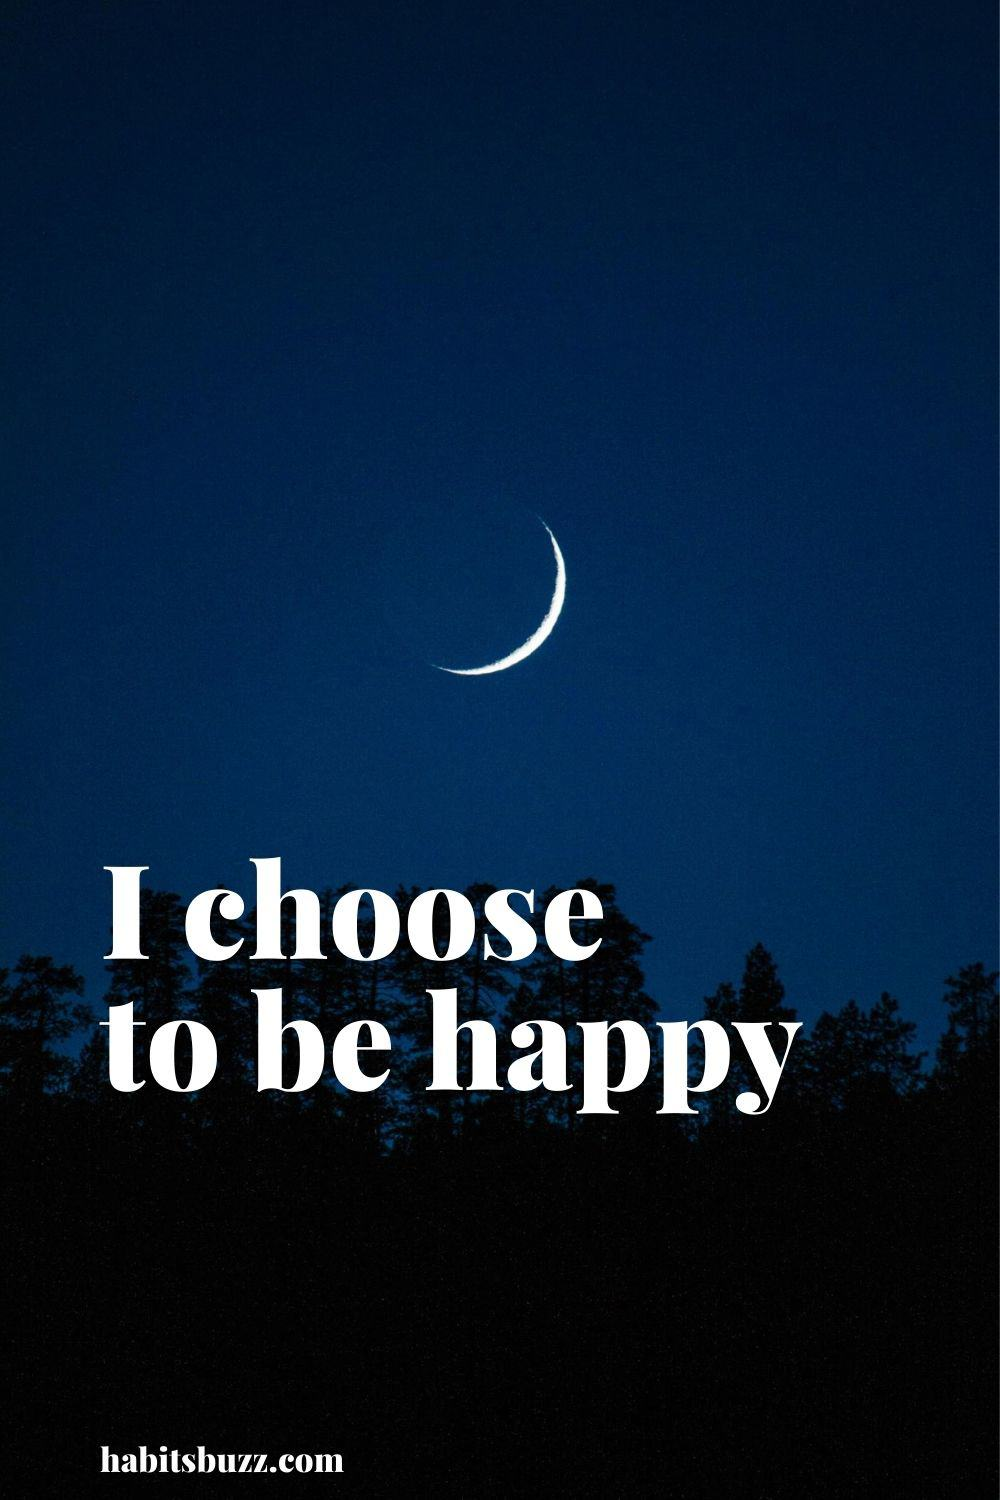 I choose to be happy - mantras to get through bad days in life